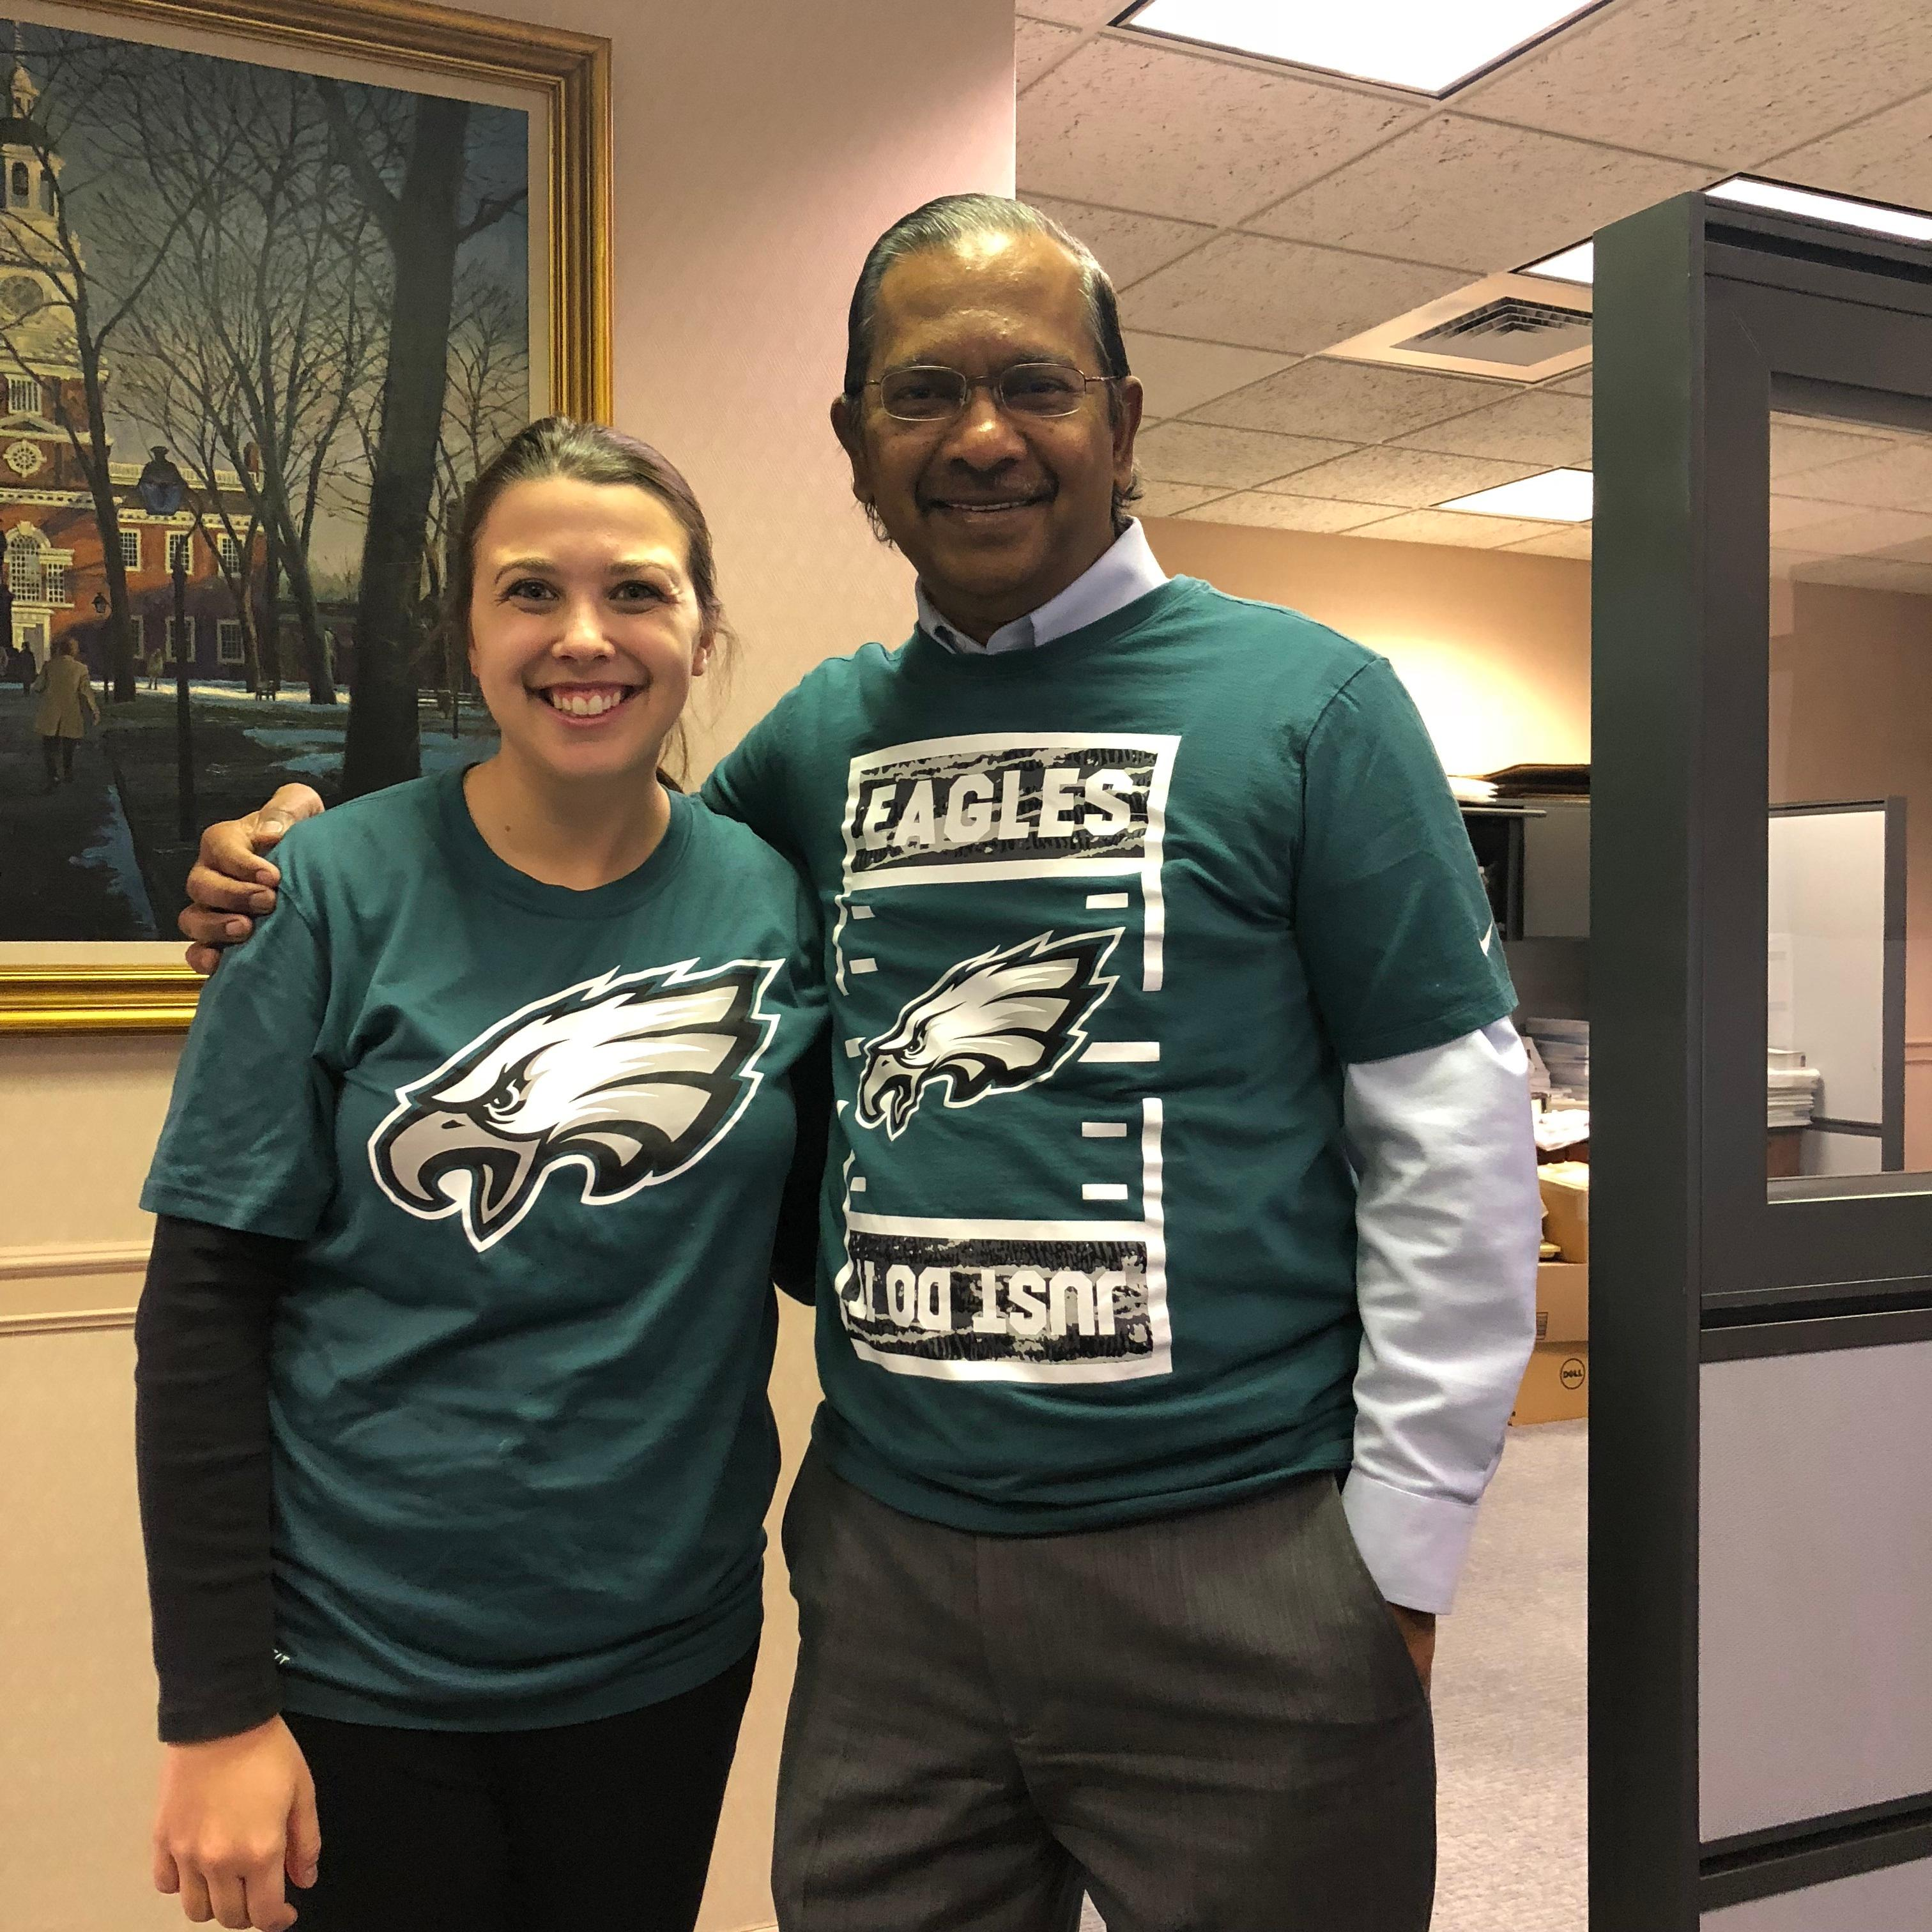 Julie and Francis sporting Eagles green